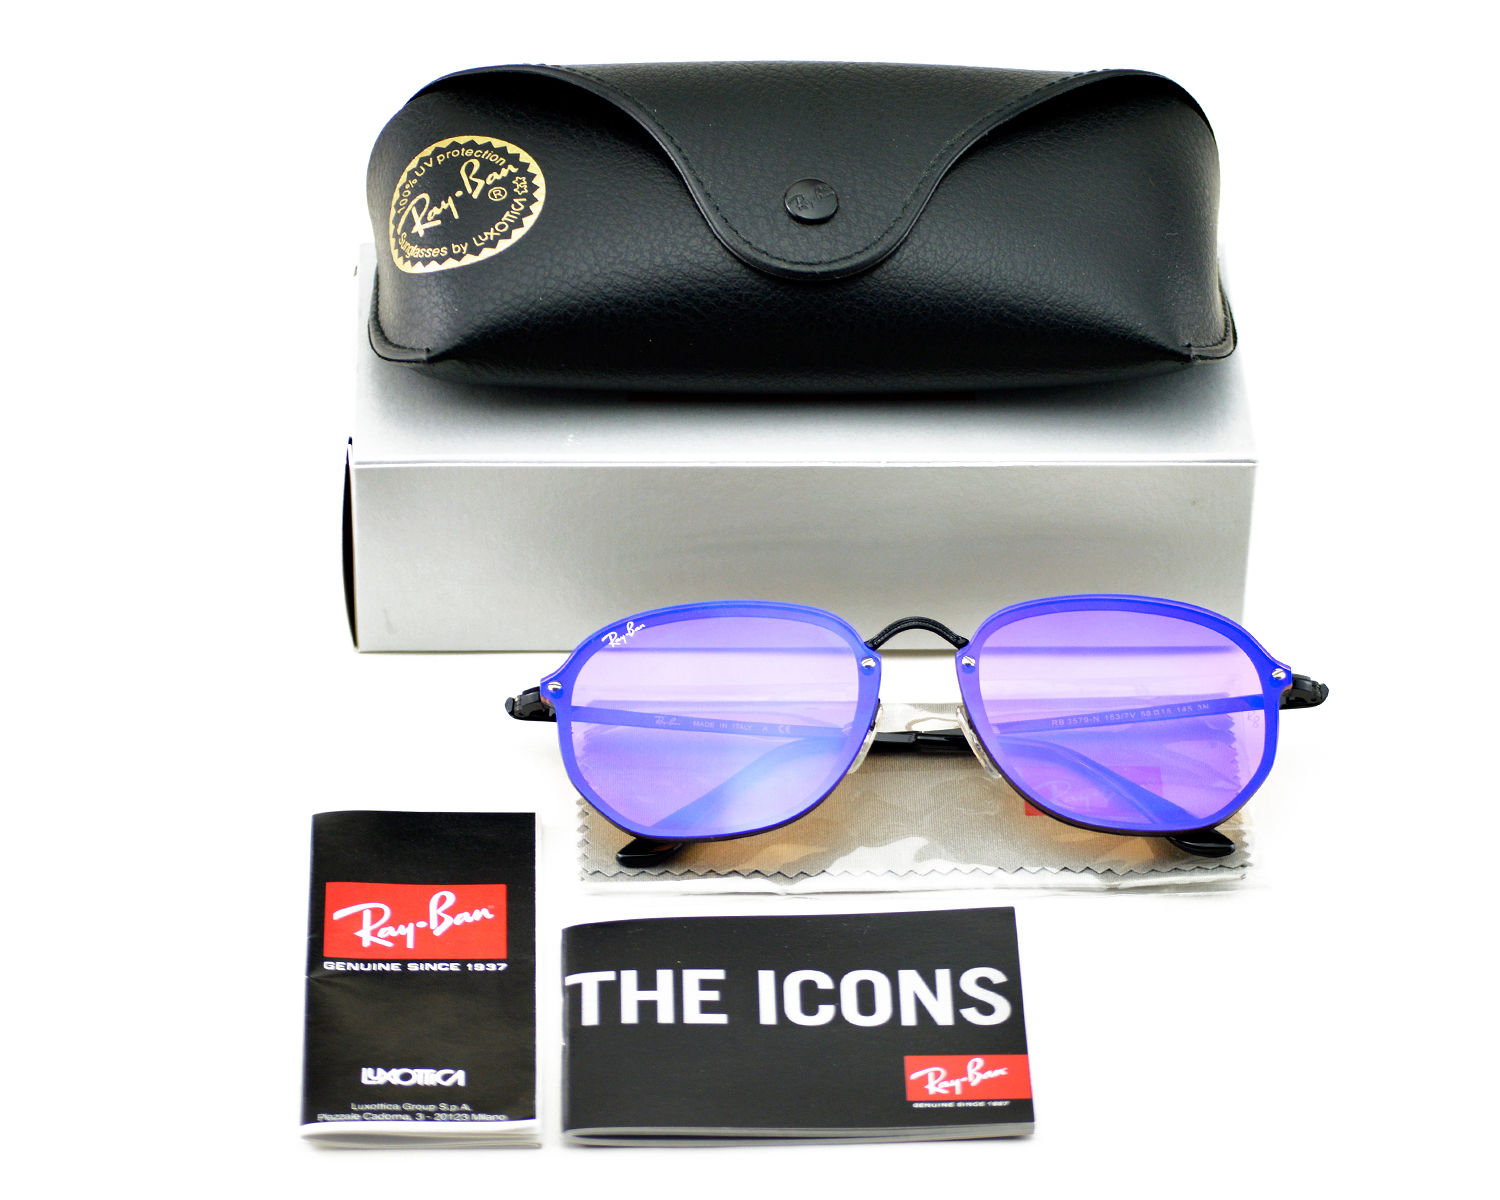 eb8023101d6 Ray-Ban RB3579N Blaze Hexagonal 153 7V Black Frame Violet Blue Mirror  Lenses Unisex Sunglasses 58mm